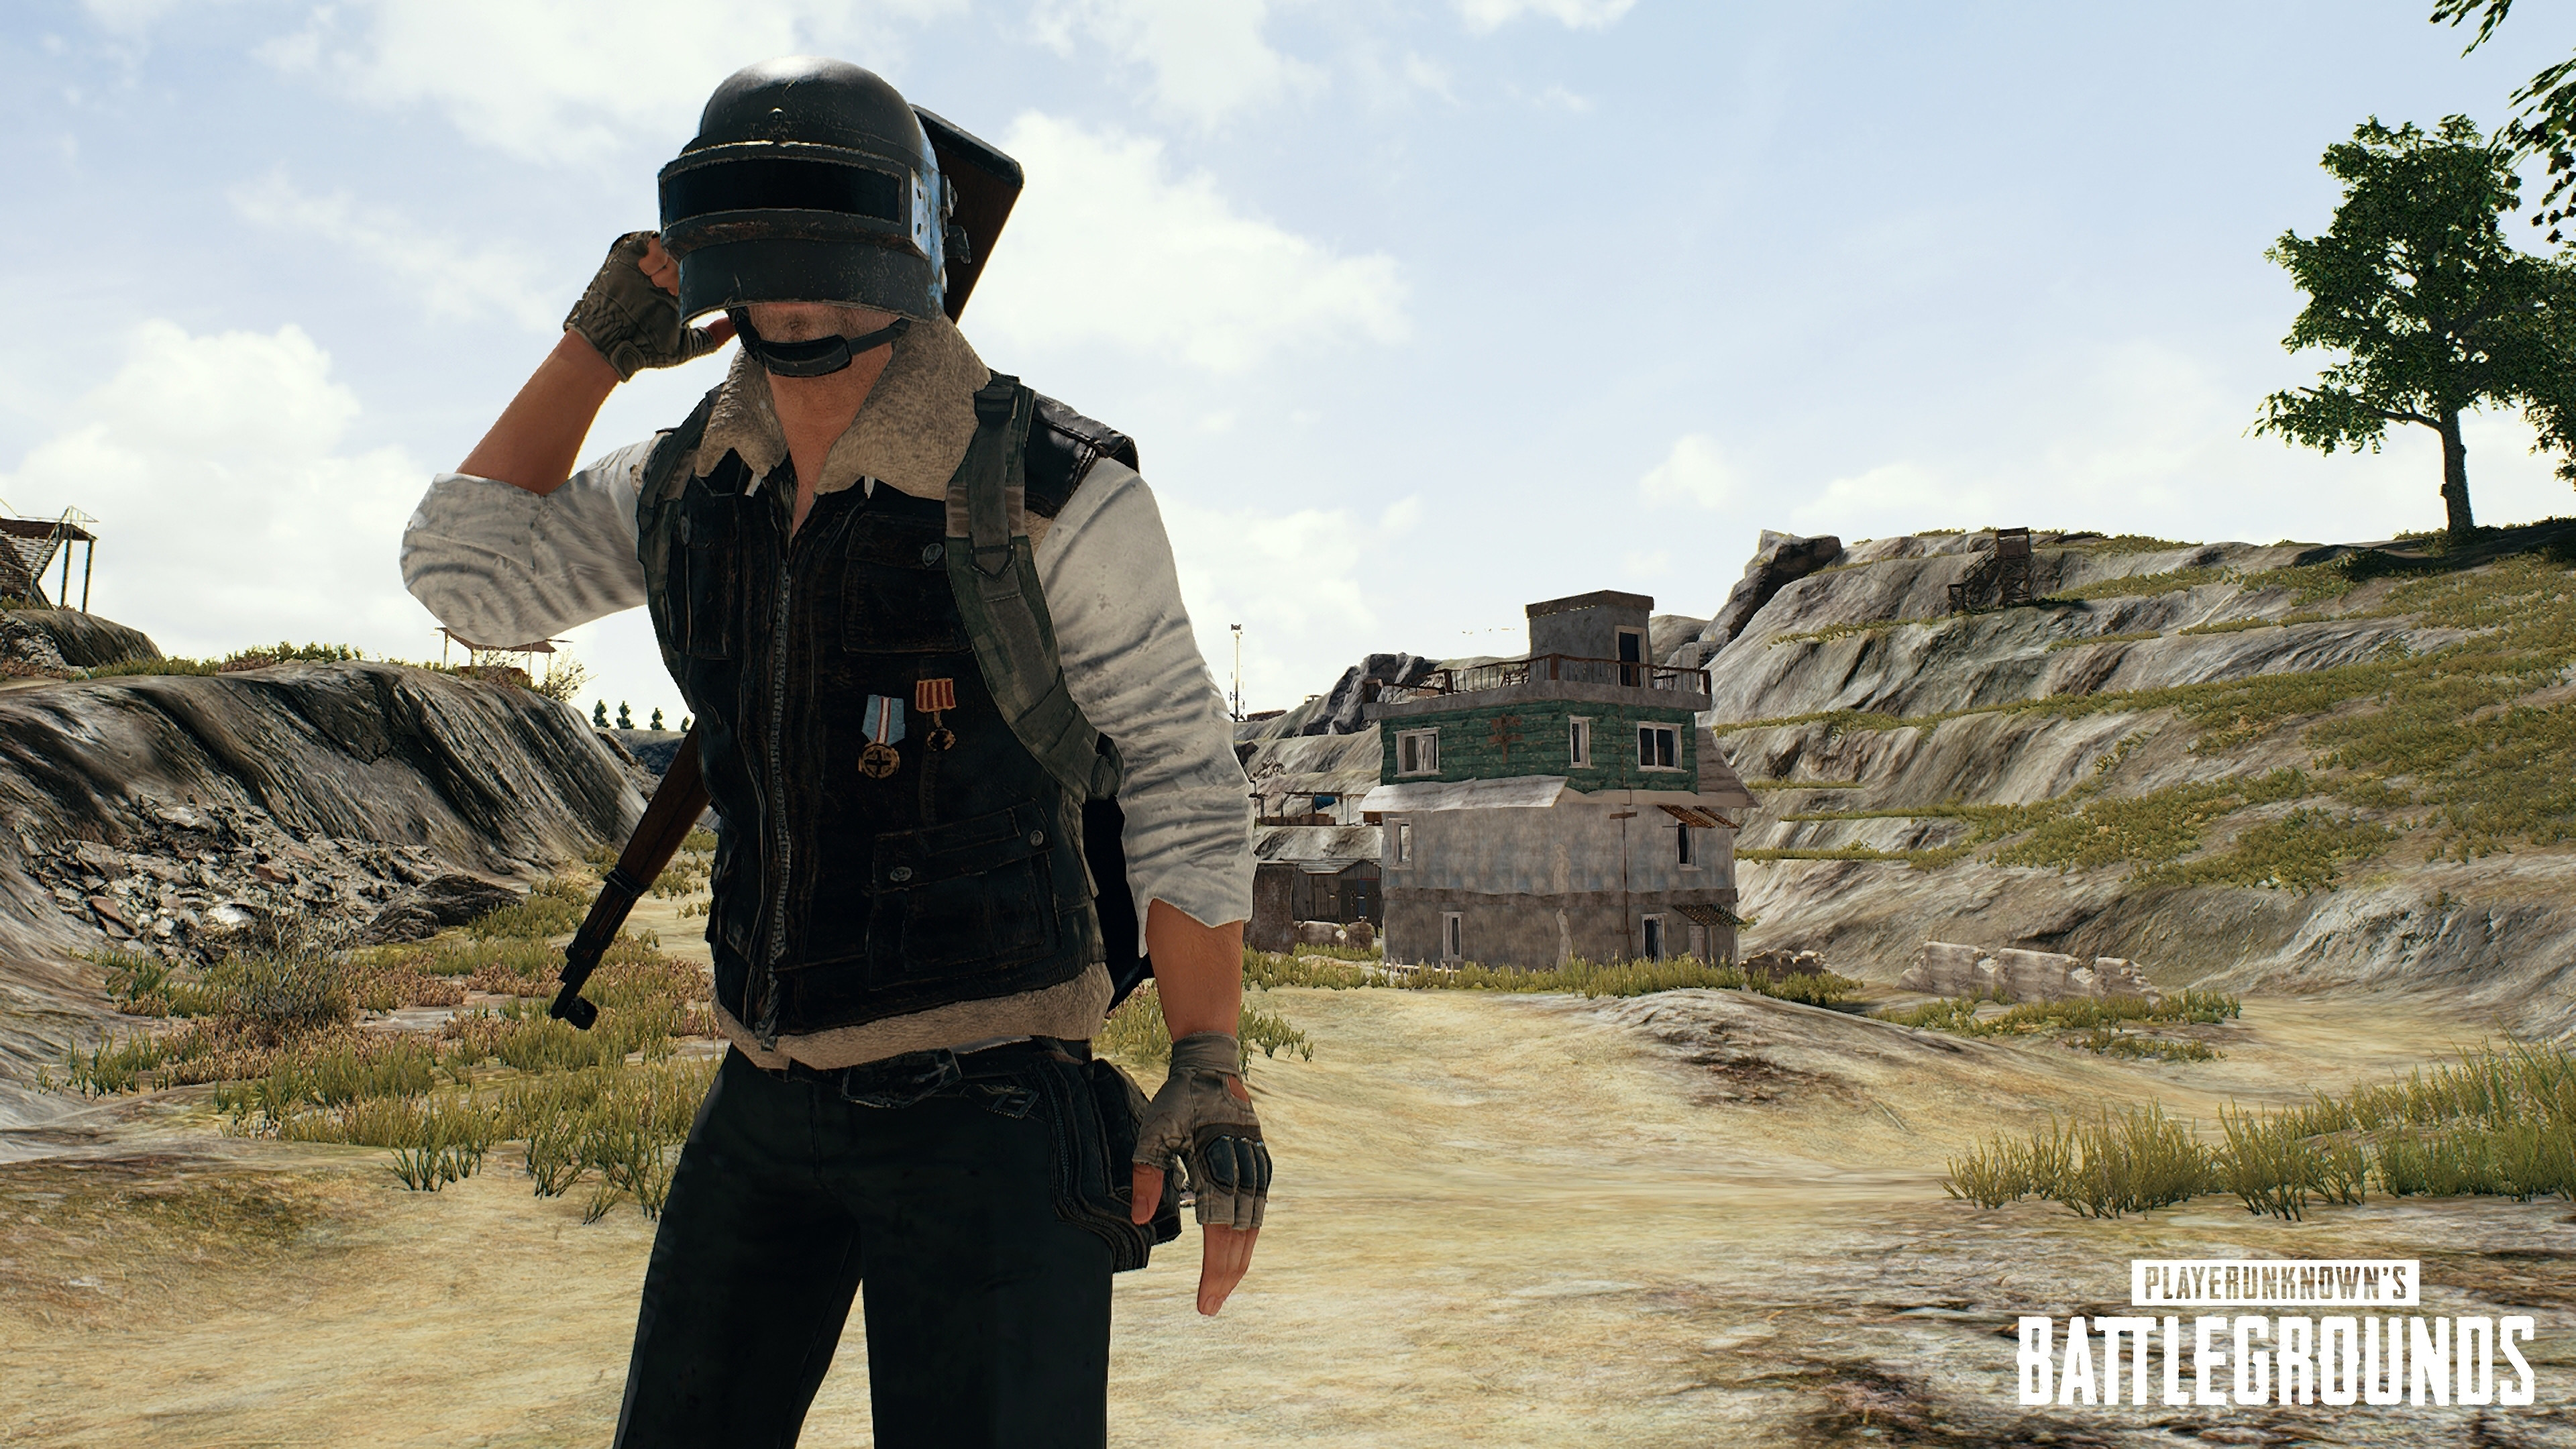 Pubg Helmet Guy 4k Pubg Wallpapers Playerunknowns: PUBG PUBG PlayerUnknown's Battlegrounds 4K Wallpaper